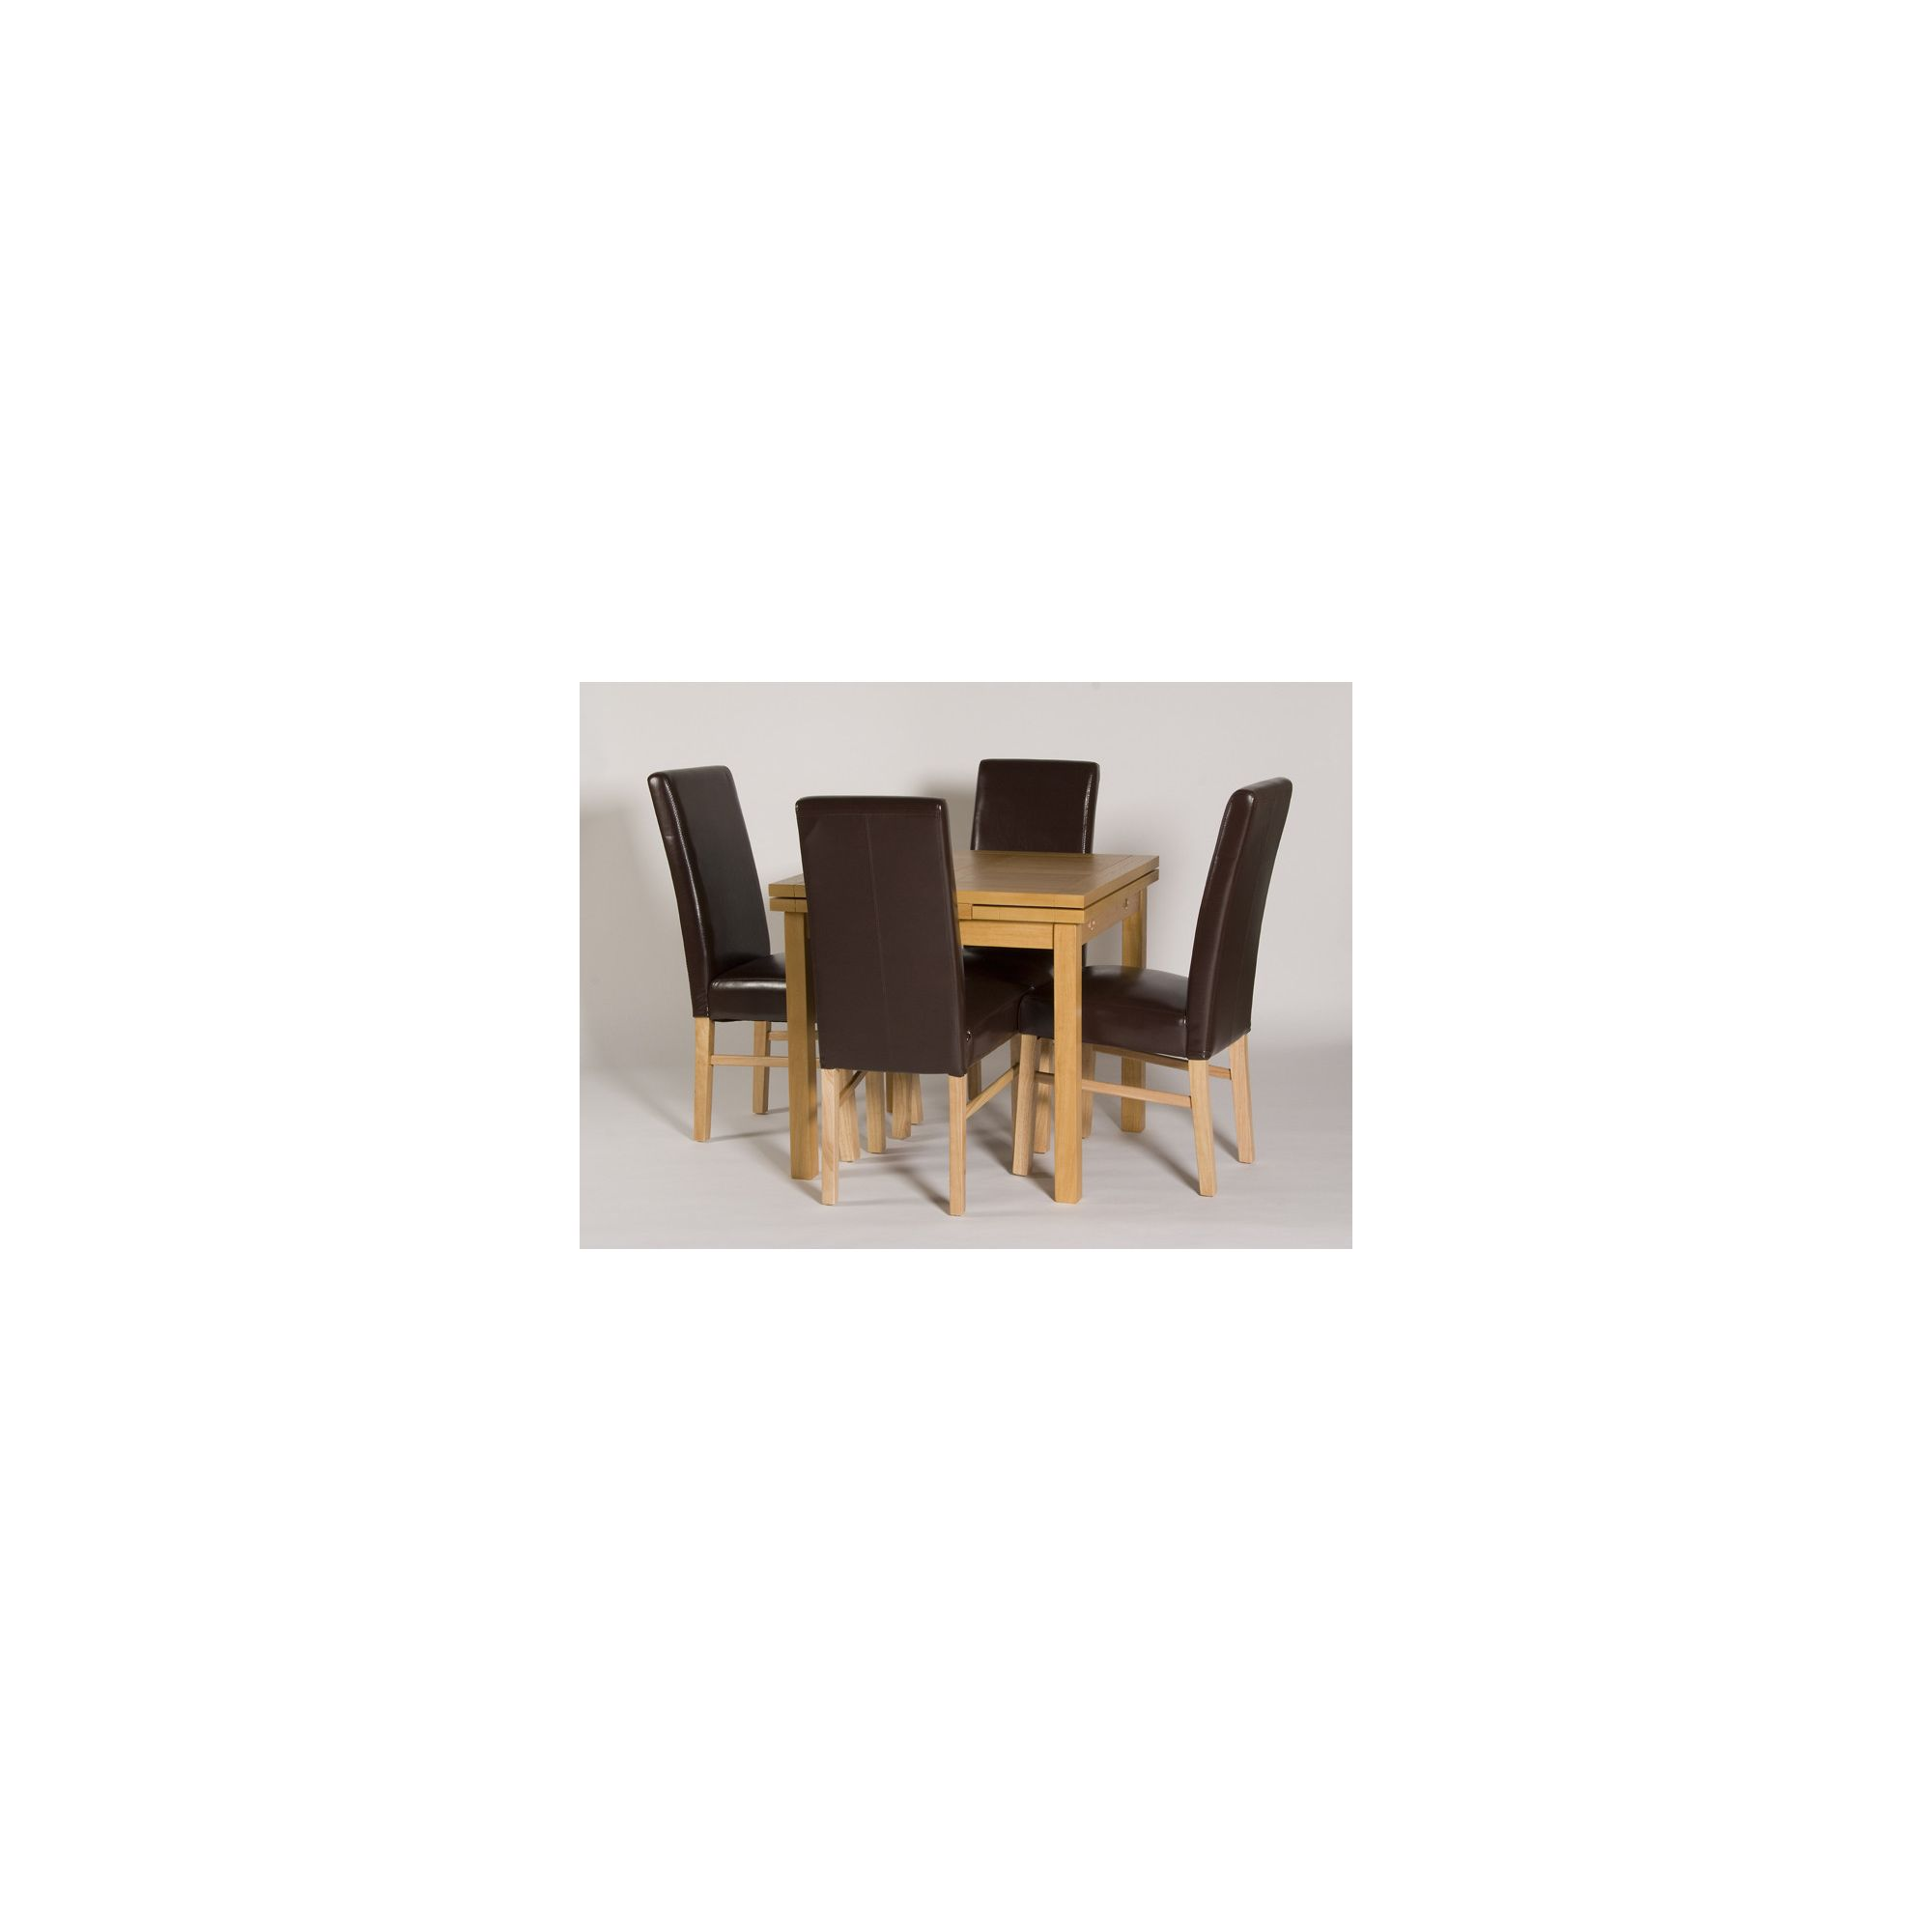 G&P Furniture Somerset 5 Piece Extending Draw-Leaf Dining Set at Tesco Direct